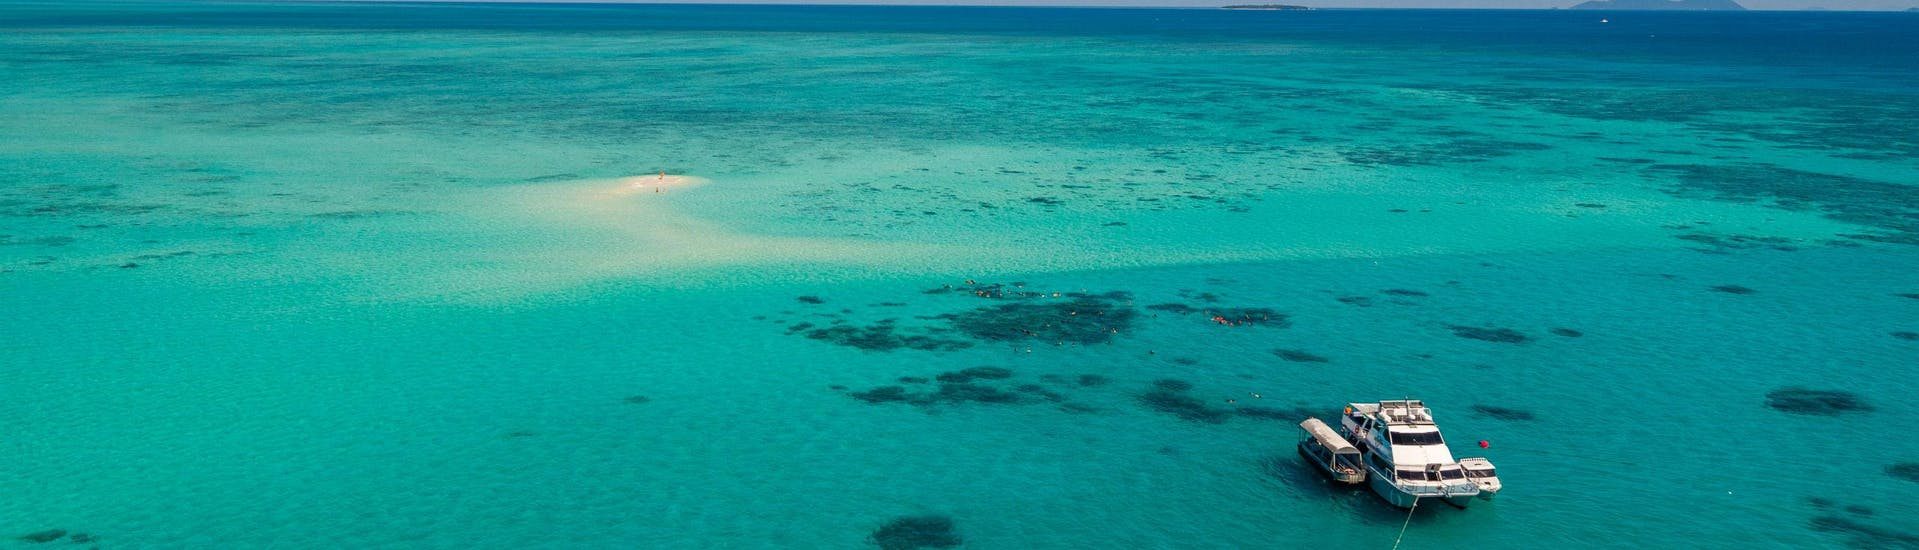 A luxury catamaran is moored in the shallow waters close to Upolu Reef Cay during a trip offered by Ocean Freedom Cairns.